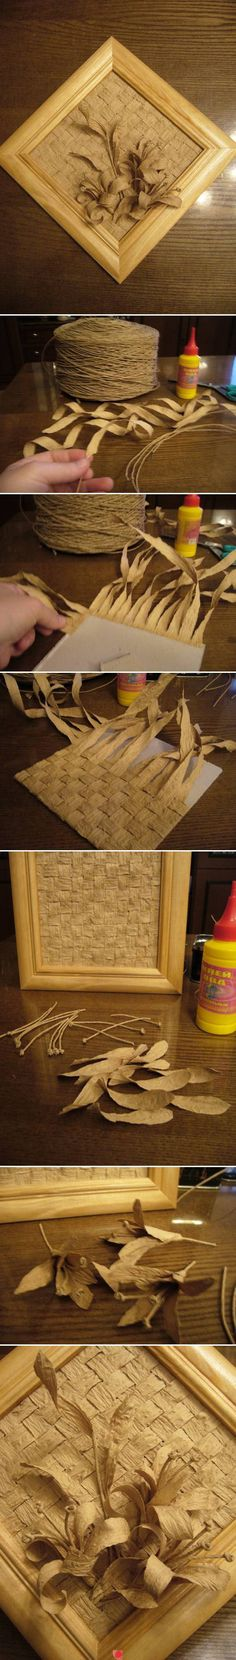 Cool craft with paper mat and a floral thingy